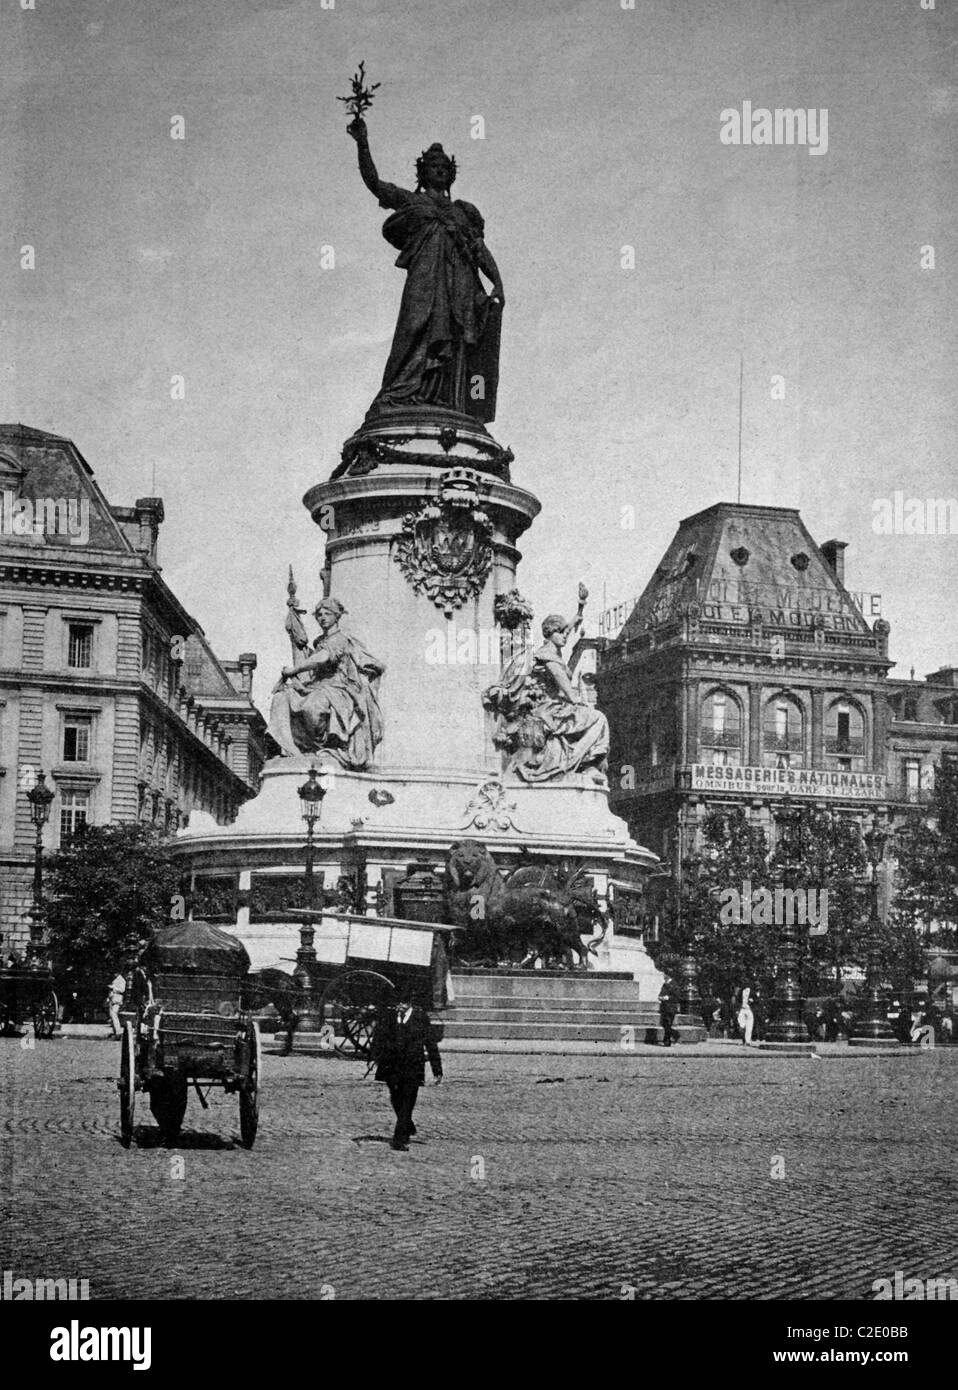 One of the first autotypes of Place de la République, Paris, historical photograph, 1884 - Stock Image